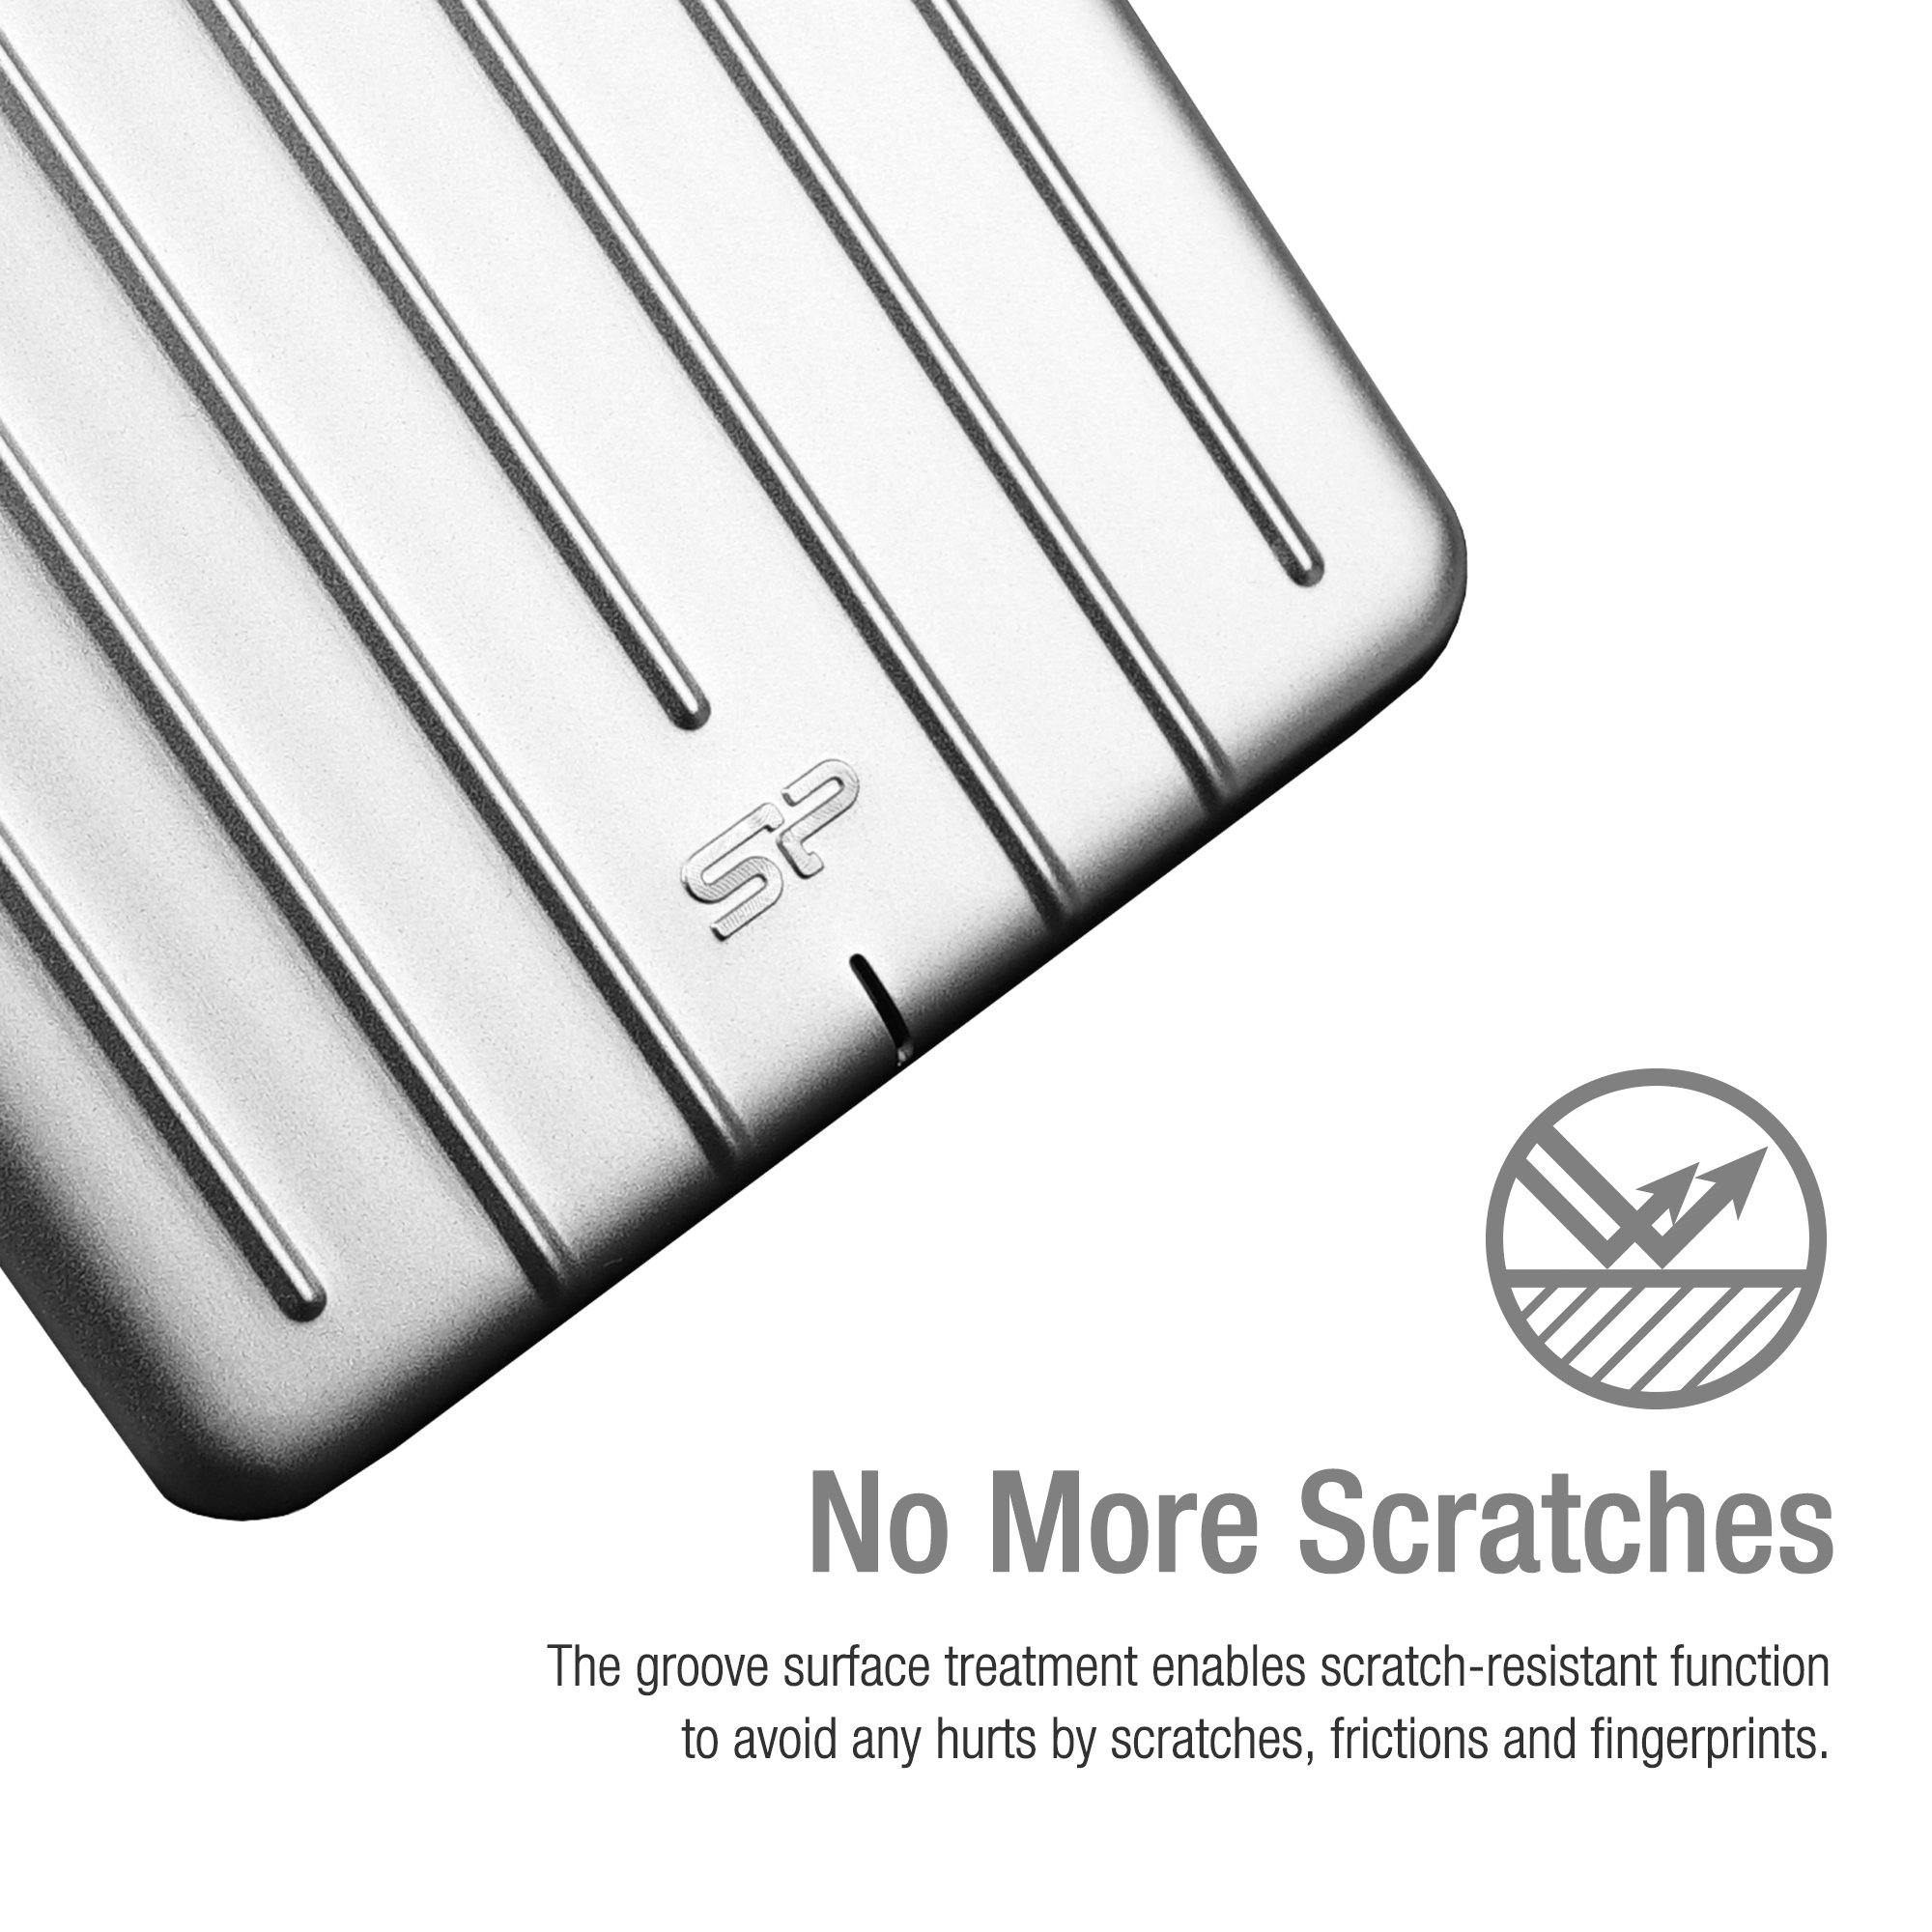 Silicon Power SU010TBPHDA75S3SAE 1TB Ultra Slim Rugged Armor A75 Shockproof USB 3.0 (USB 3.1 Gen 1) 2.5'' Portable External Hard Drive, Silver by Silicon Power (Image #3)